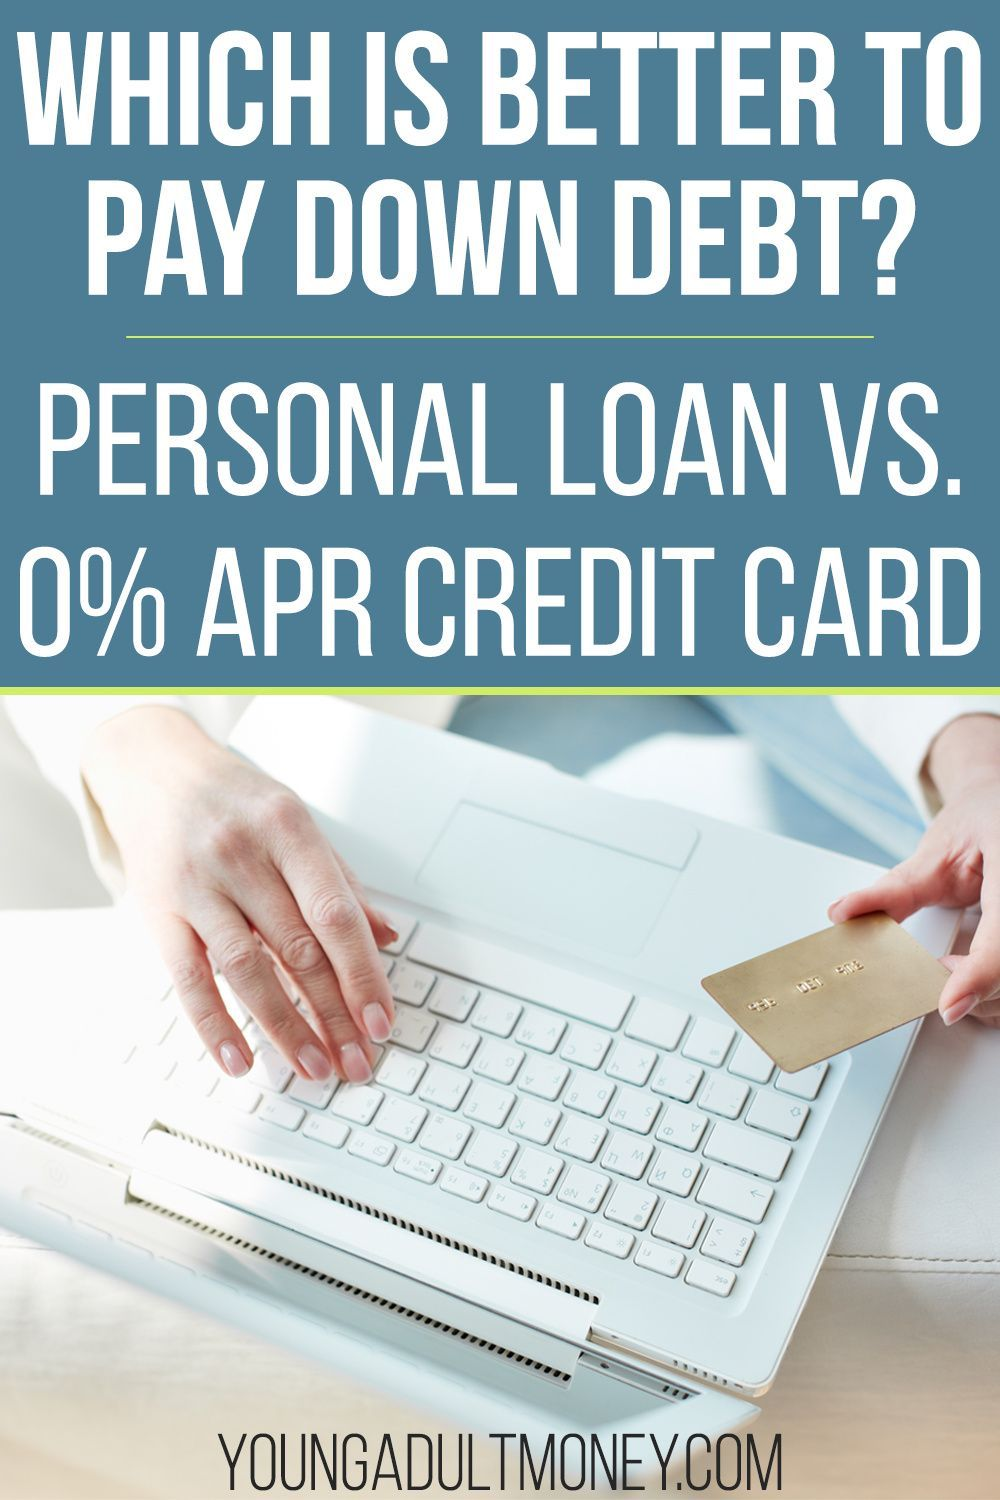 Personal Loan Vs 0 Apr Credit Card In 2020 Personal Loans Balance Transfer Credit Cards Credit Card Transfer